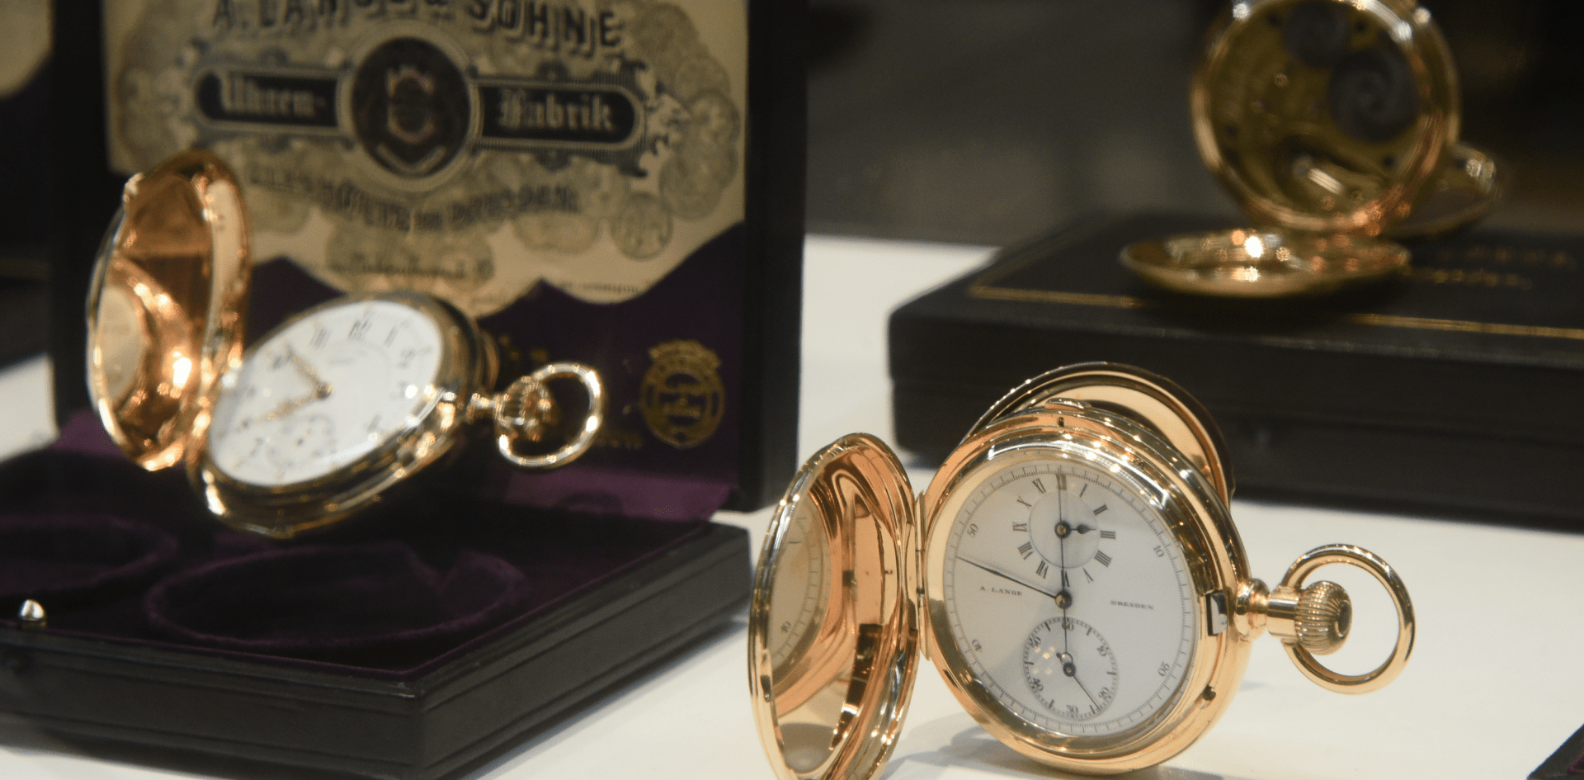 Pocket watches from the 19th century (Photo: Sincere Fine Watches)